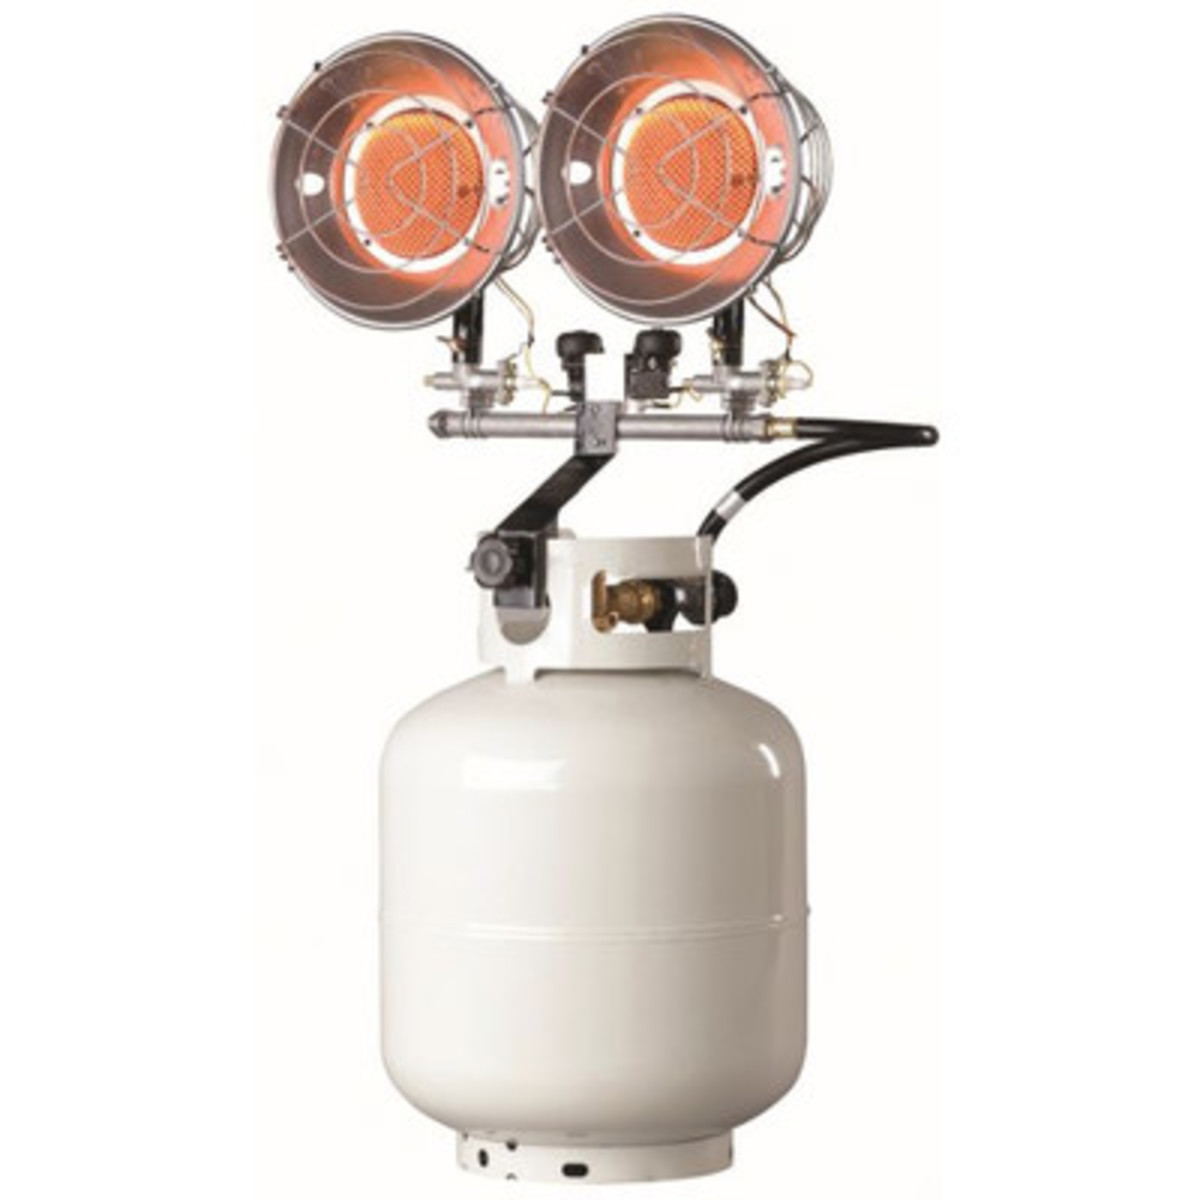 Propane space heater top-mounted to 20-pound propane tank